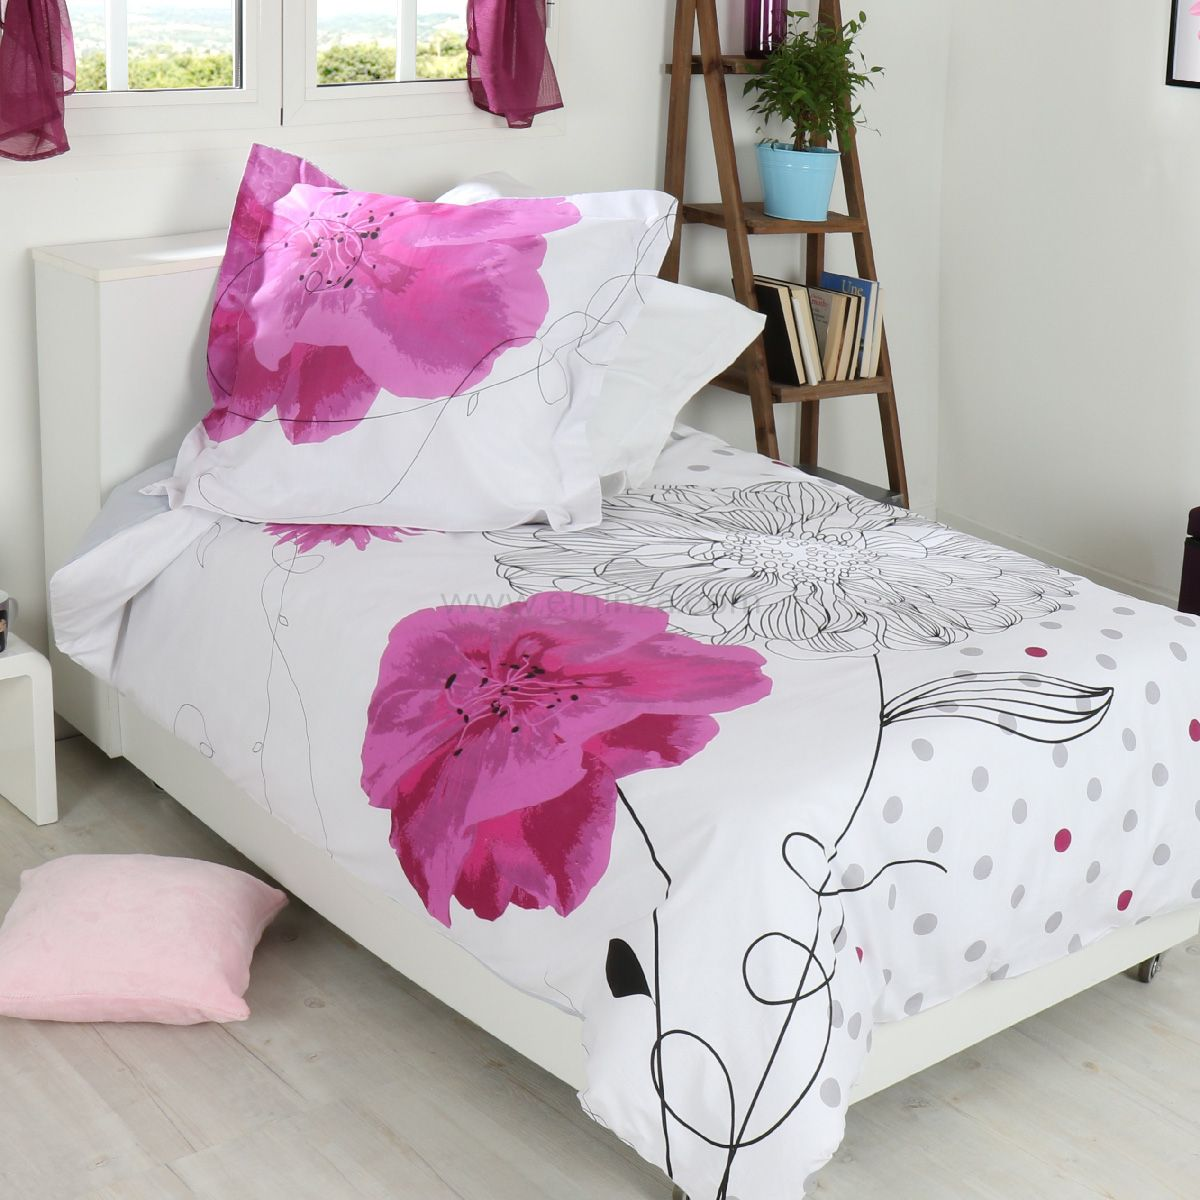 housse de couette et une taie 140 cm florela housse de. Black Bedroom Furniture Sets. Home Design Ideas